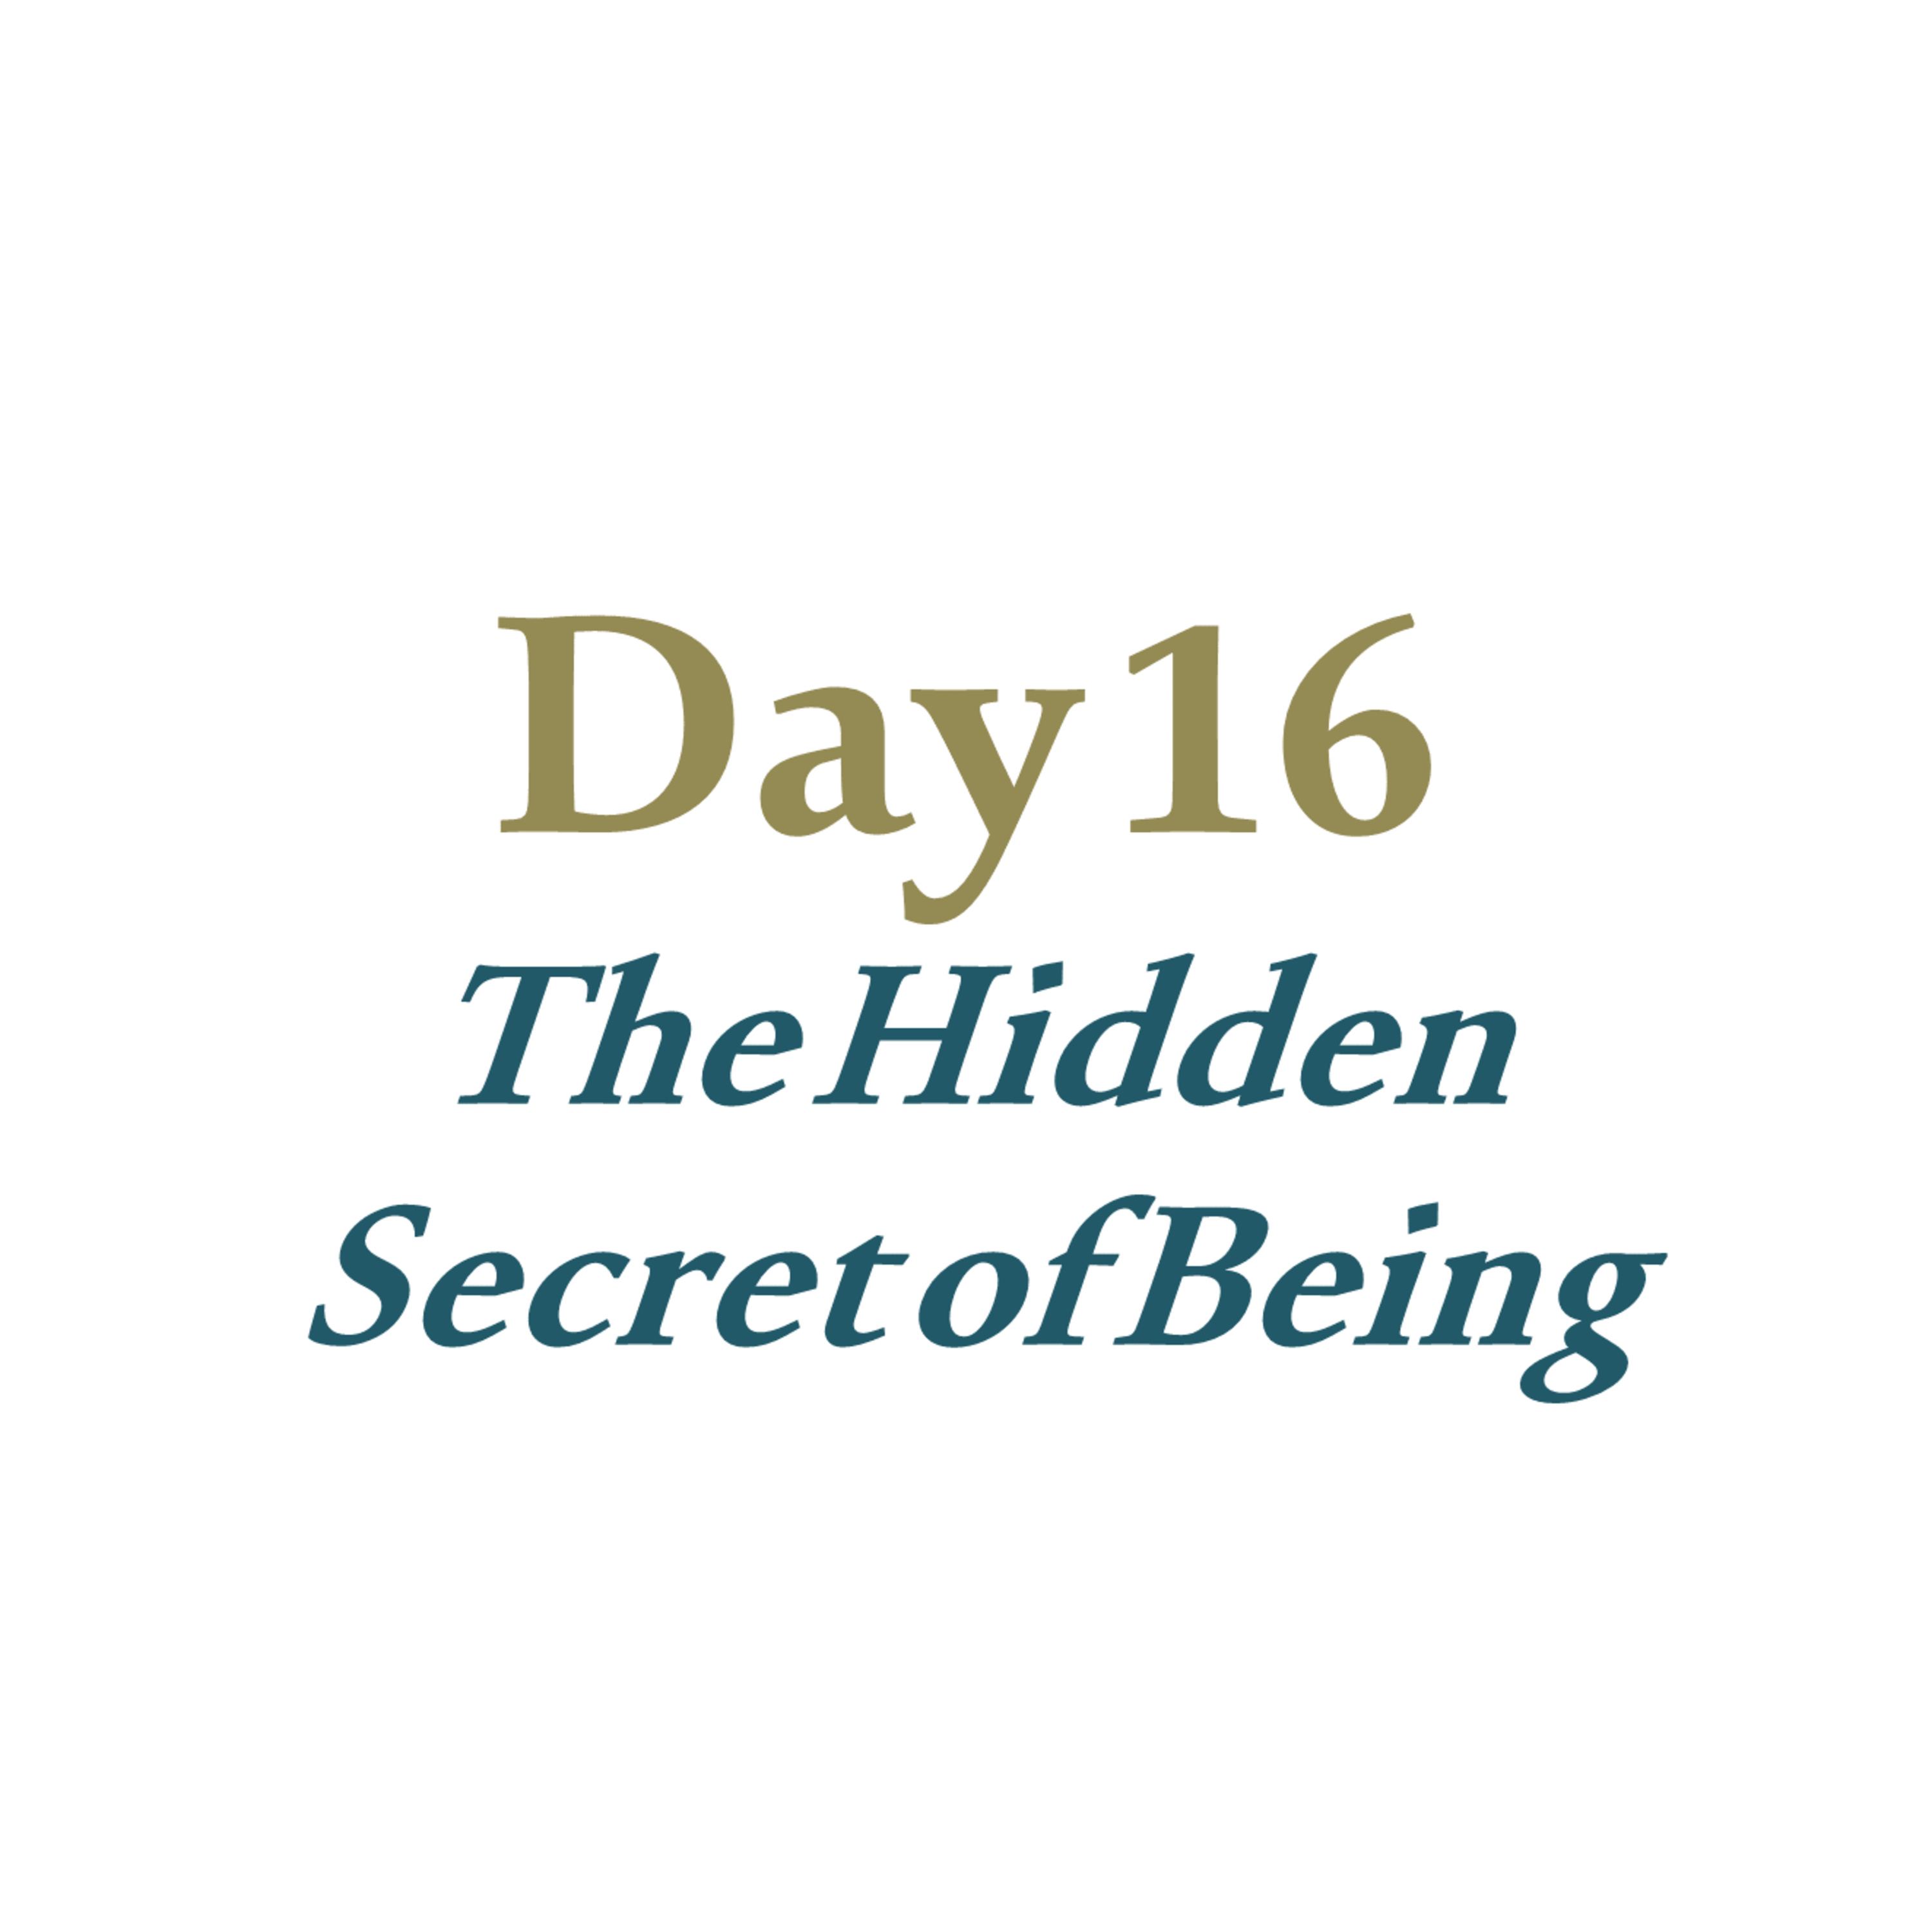 Day 16 - The Hidden Secret of Being